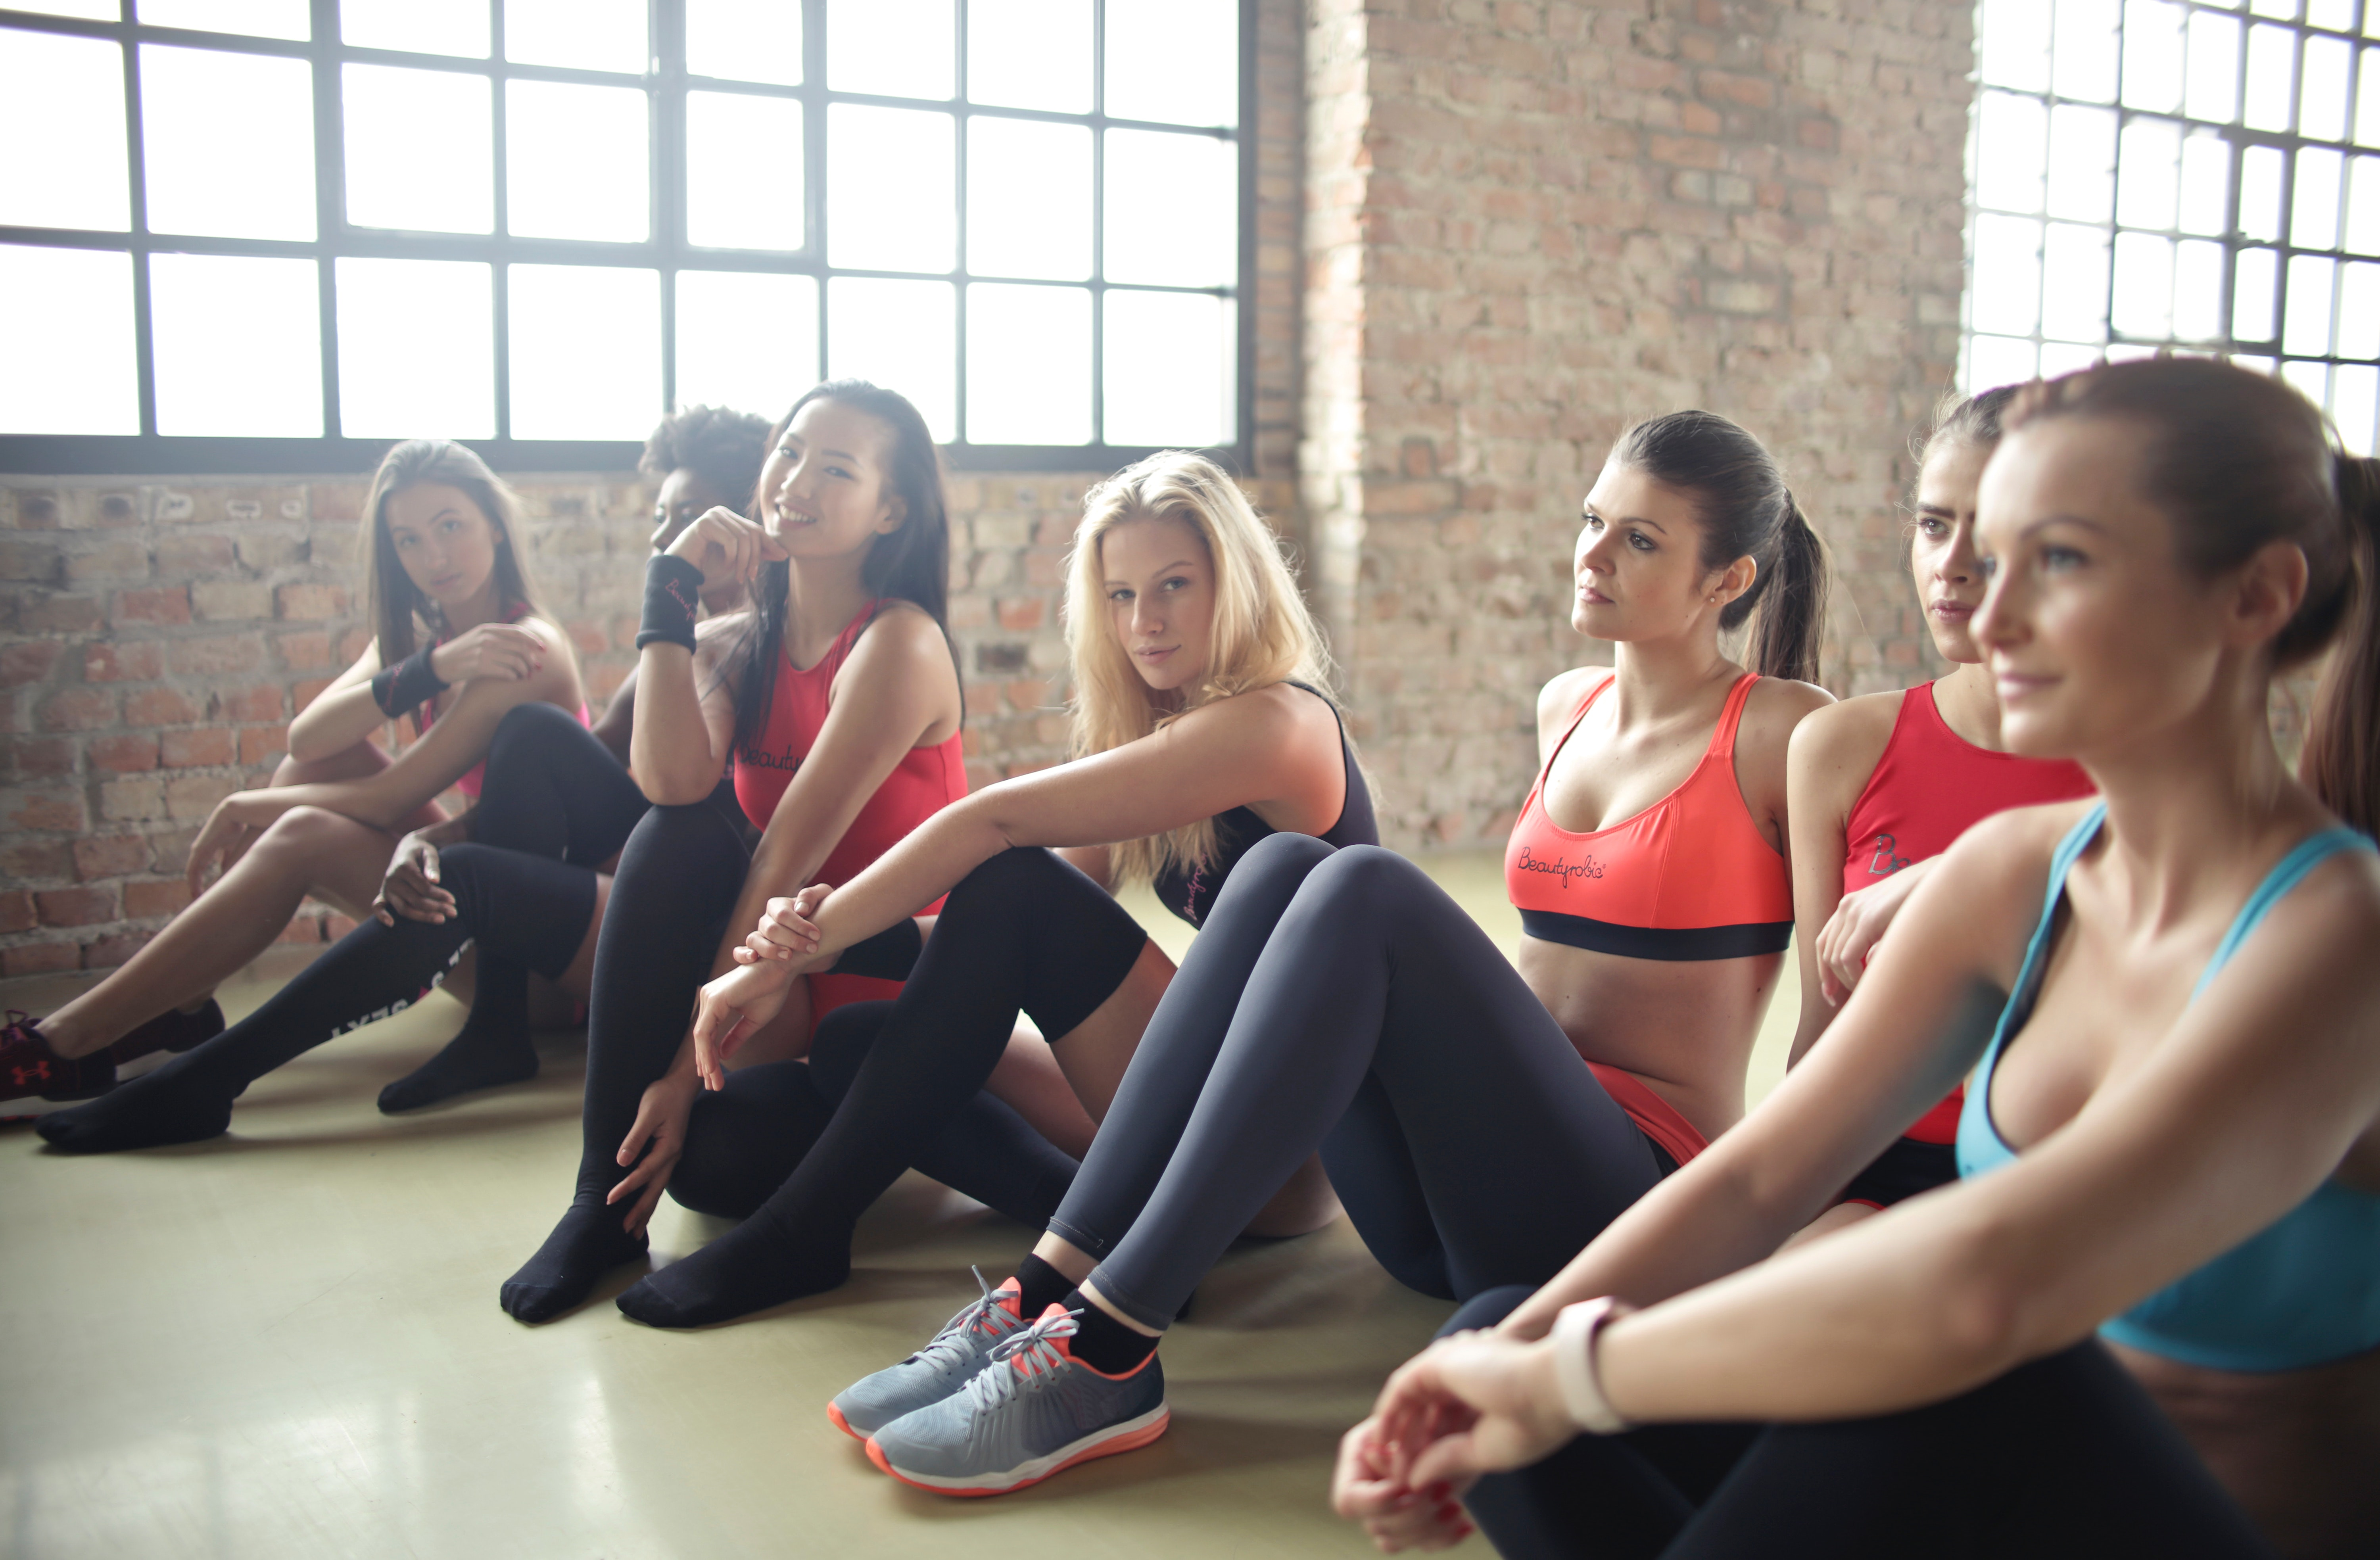 Group Of Woman In Yoga Class, Beautyrobic, Class, Exercise, Fitness, HQ Photo